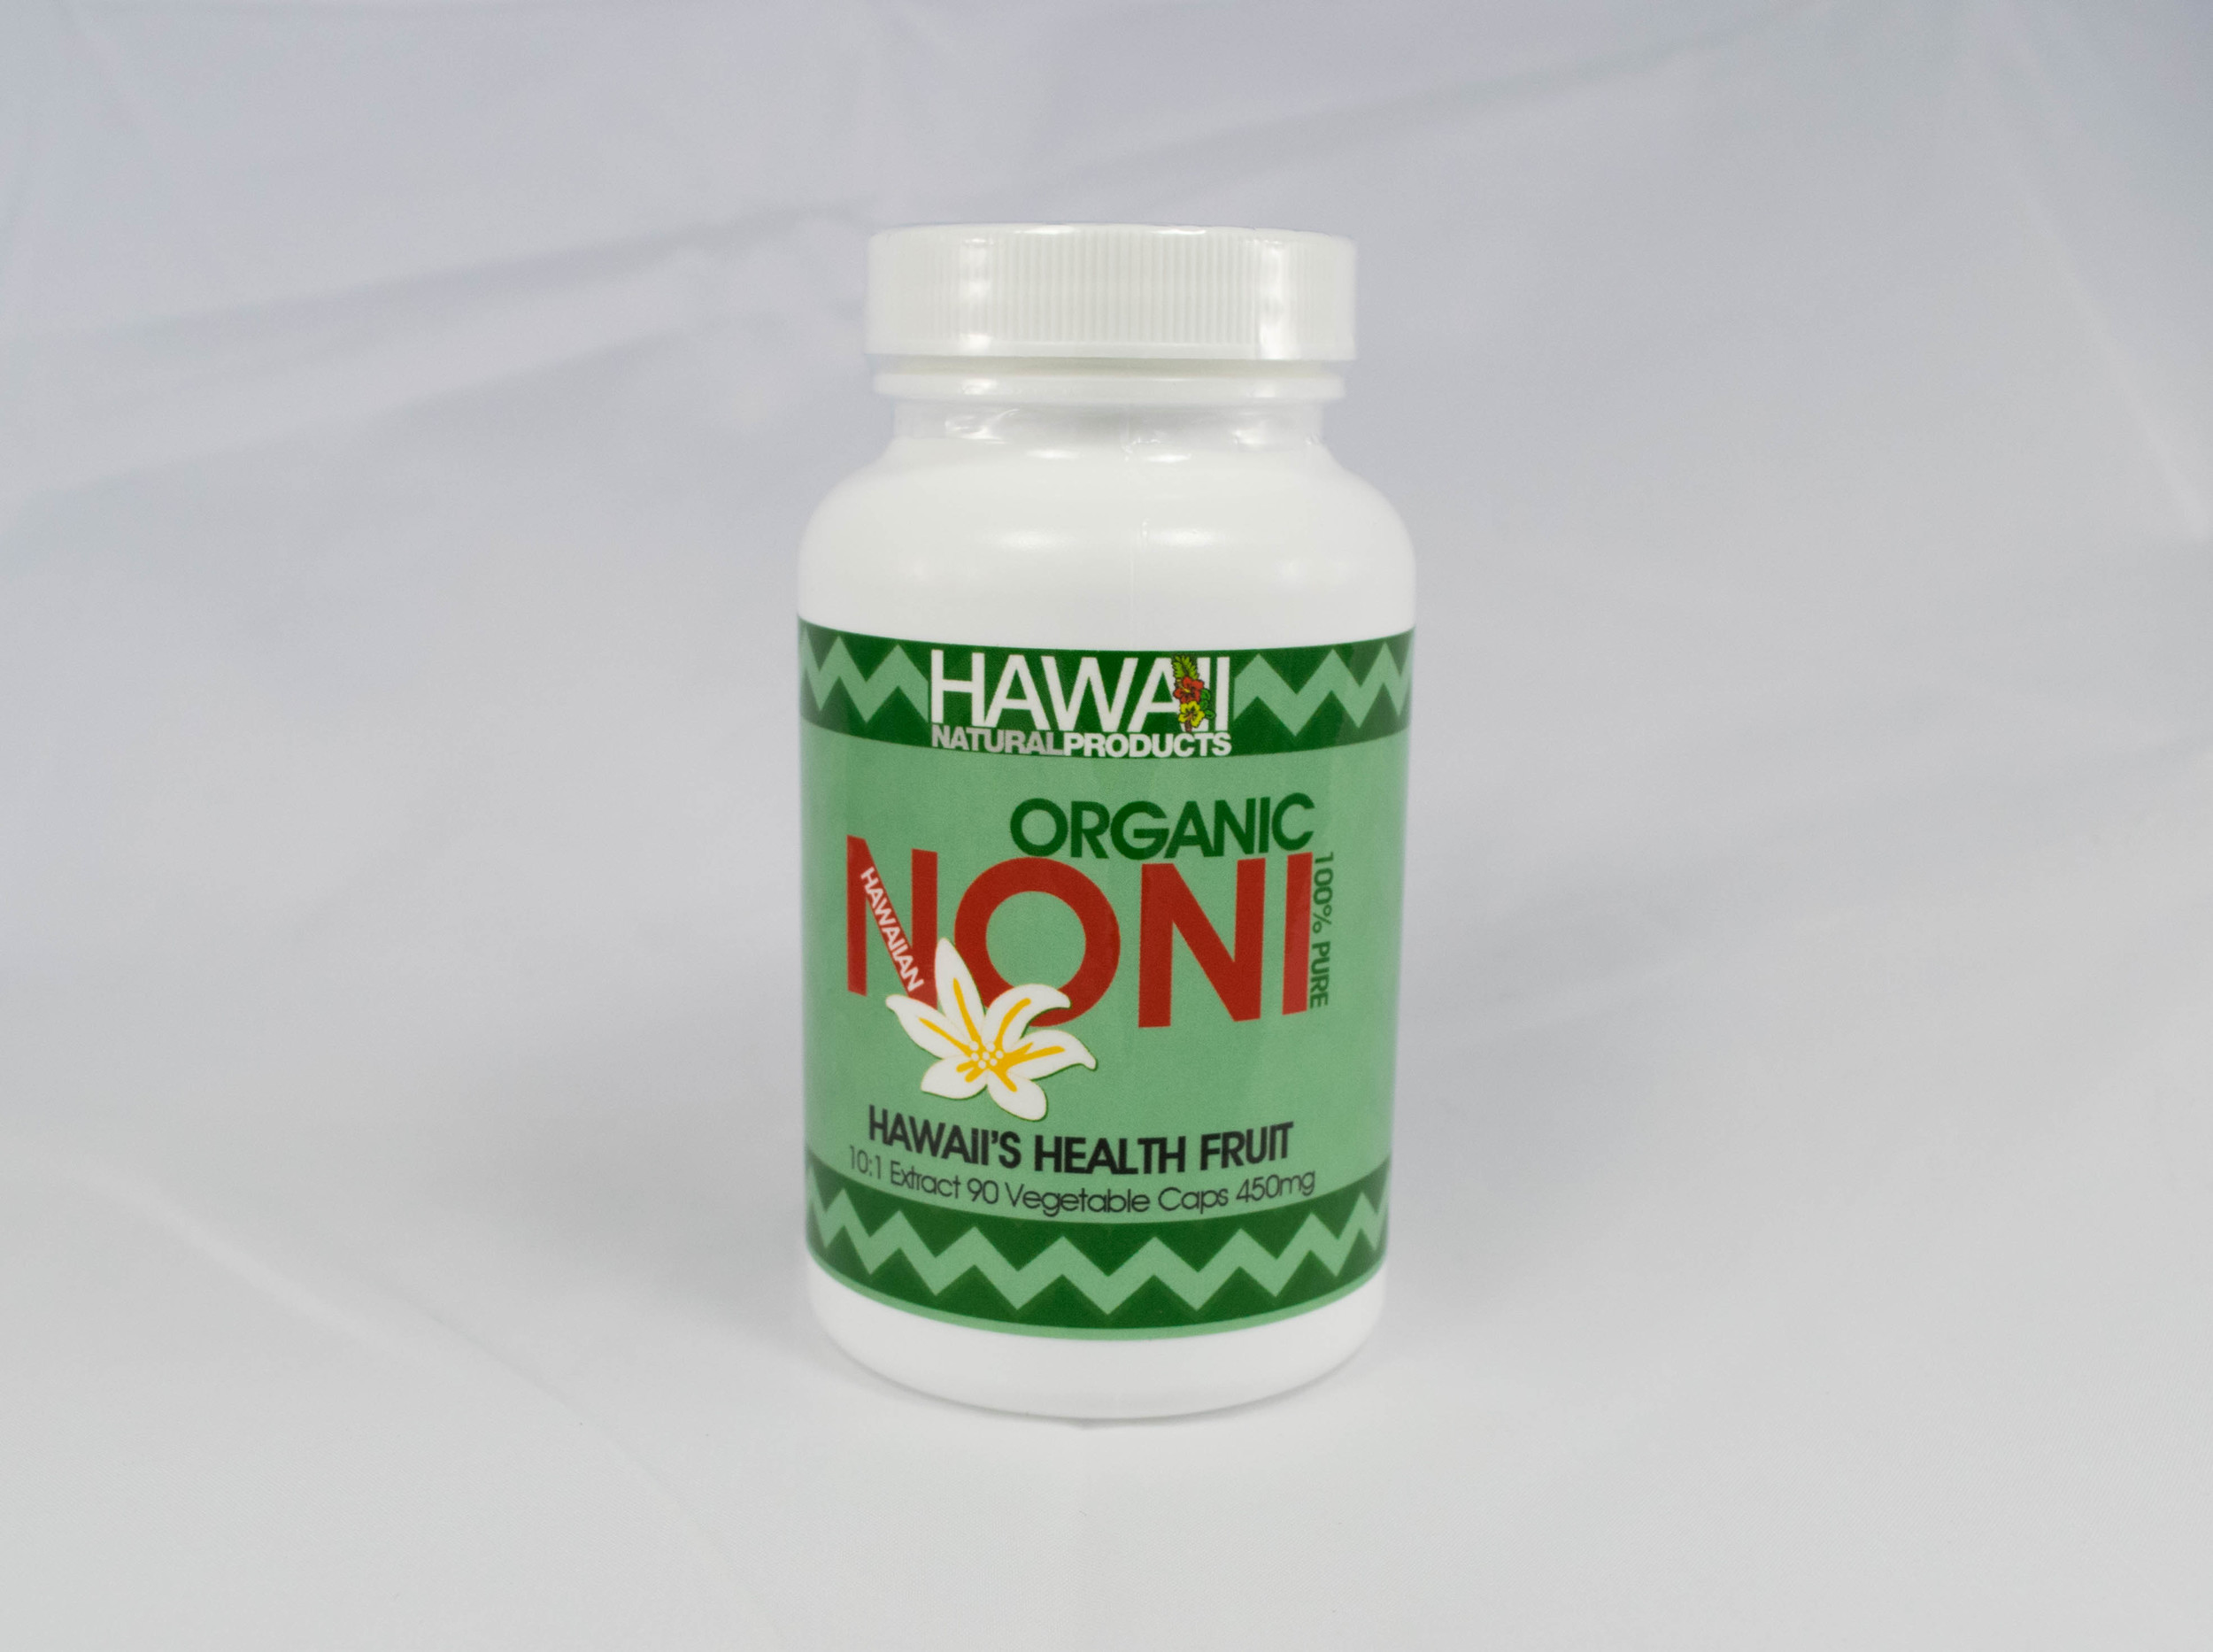 mana-foods-products-noni-capsules-hawaiian-natural-products